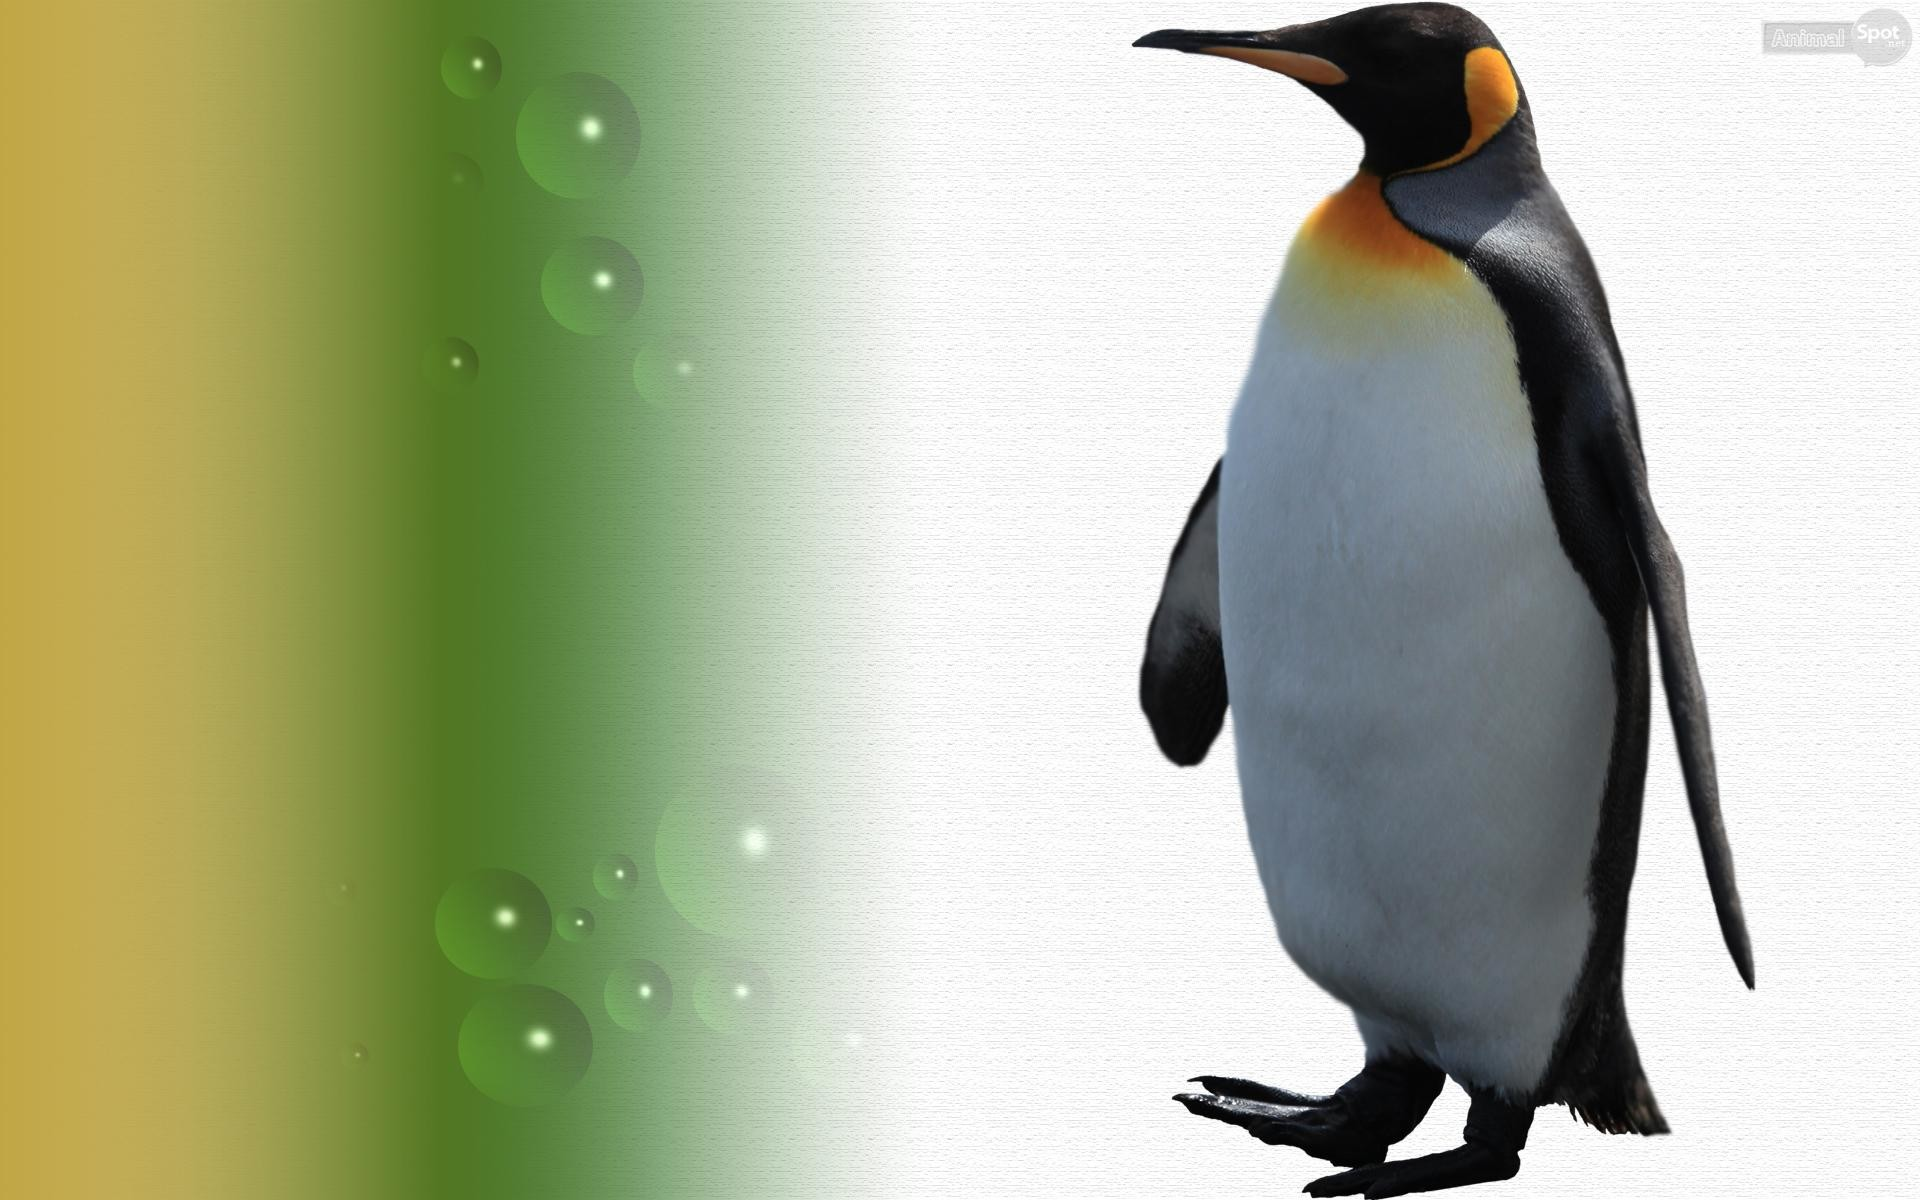 1920x1200 More wallpaper collections. 31 Wallpapers. cute penguin wallpaper